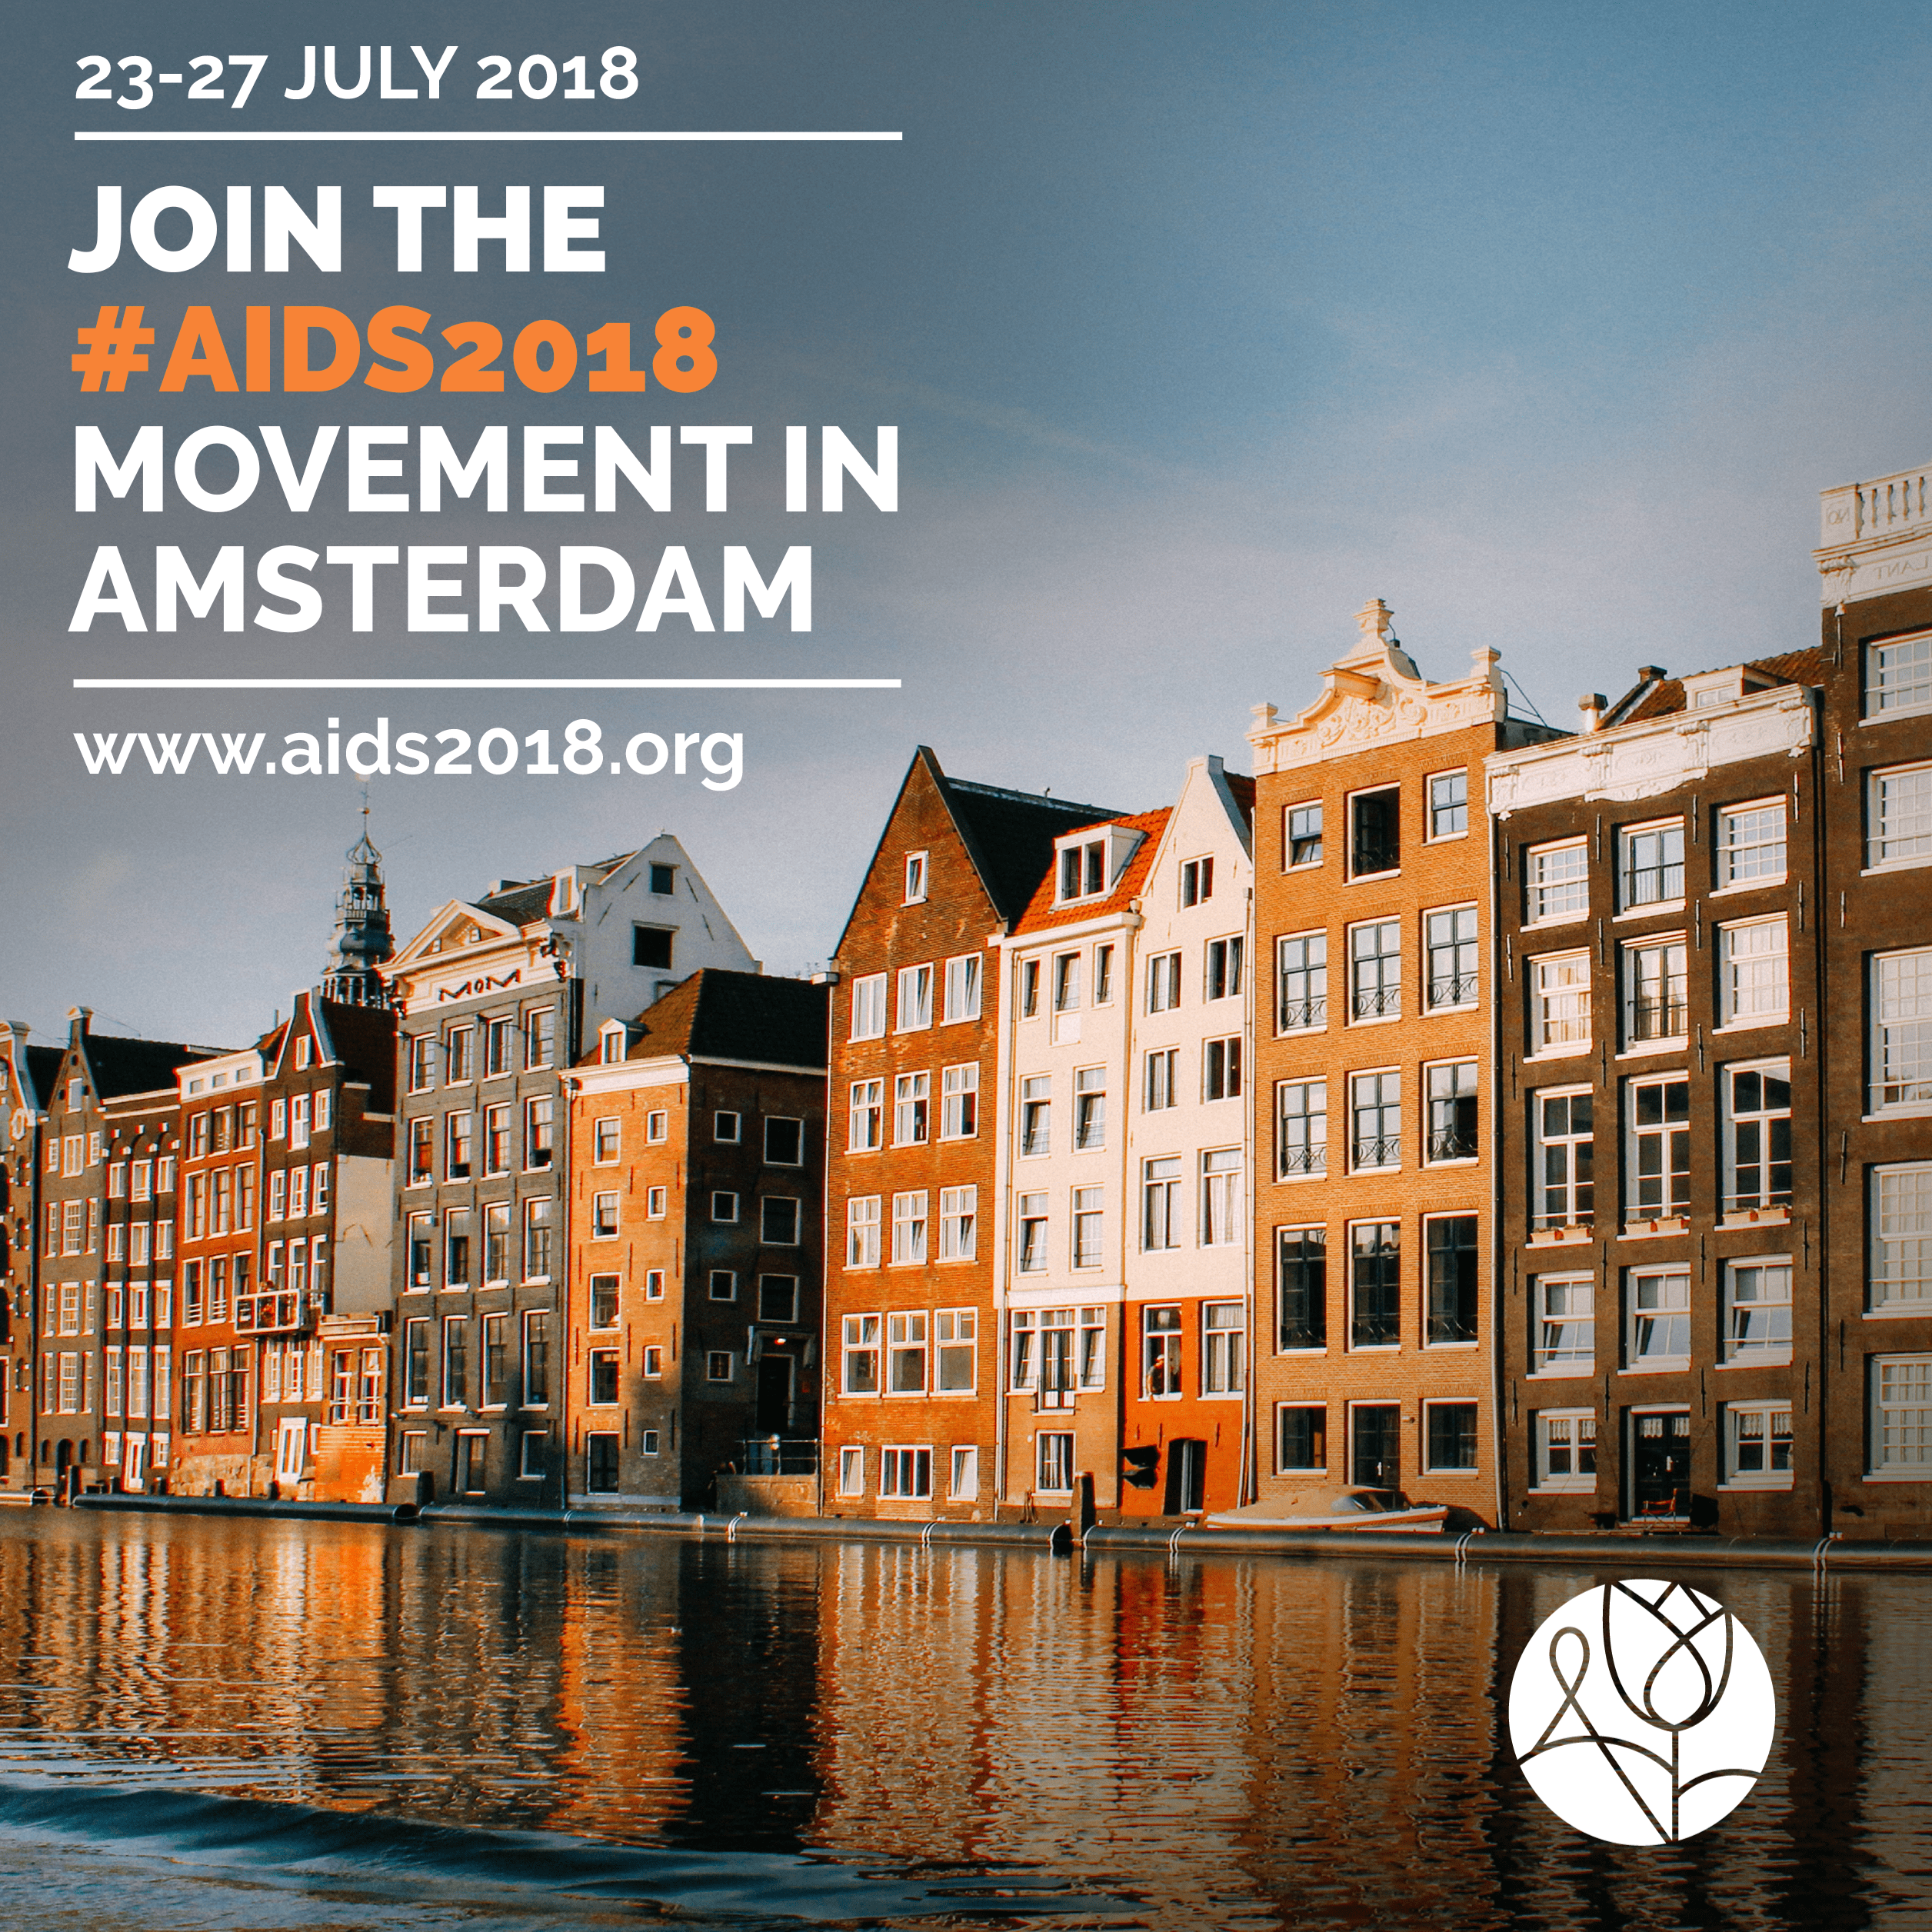 AIDS2018 comes to Amsterdam!